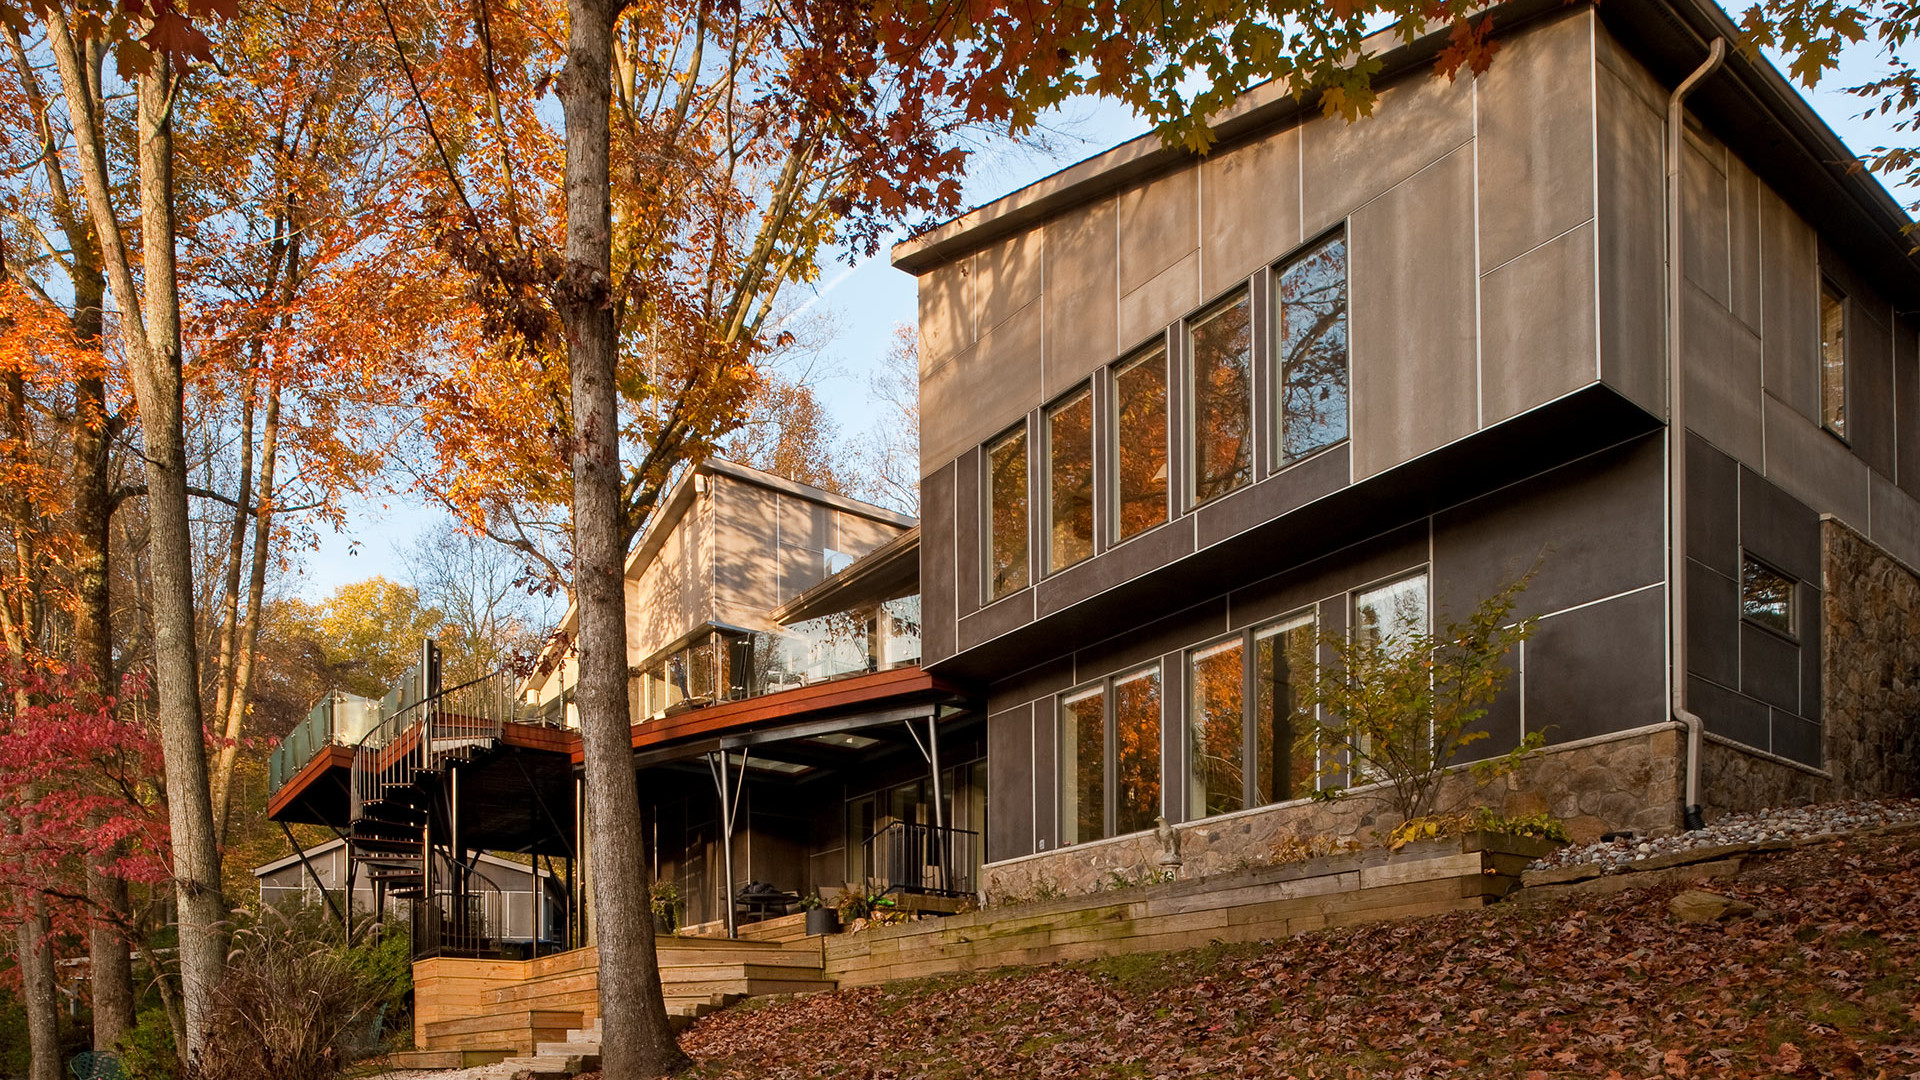 House renovation: view of the house and its steel windows and doors